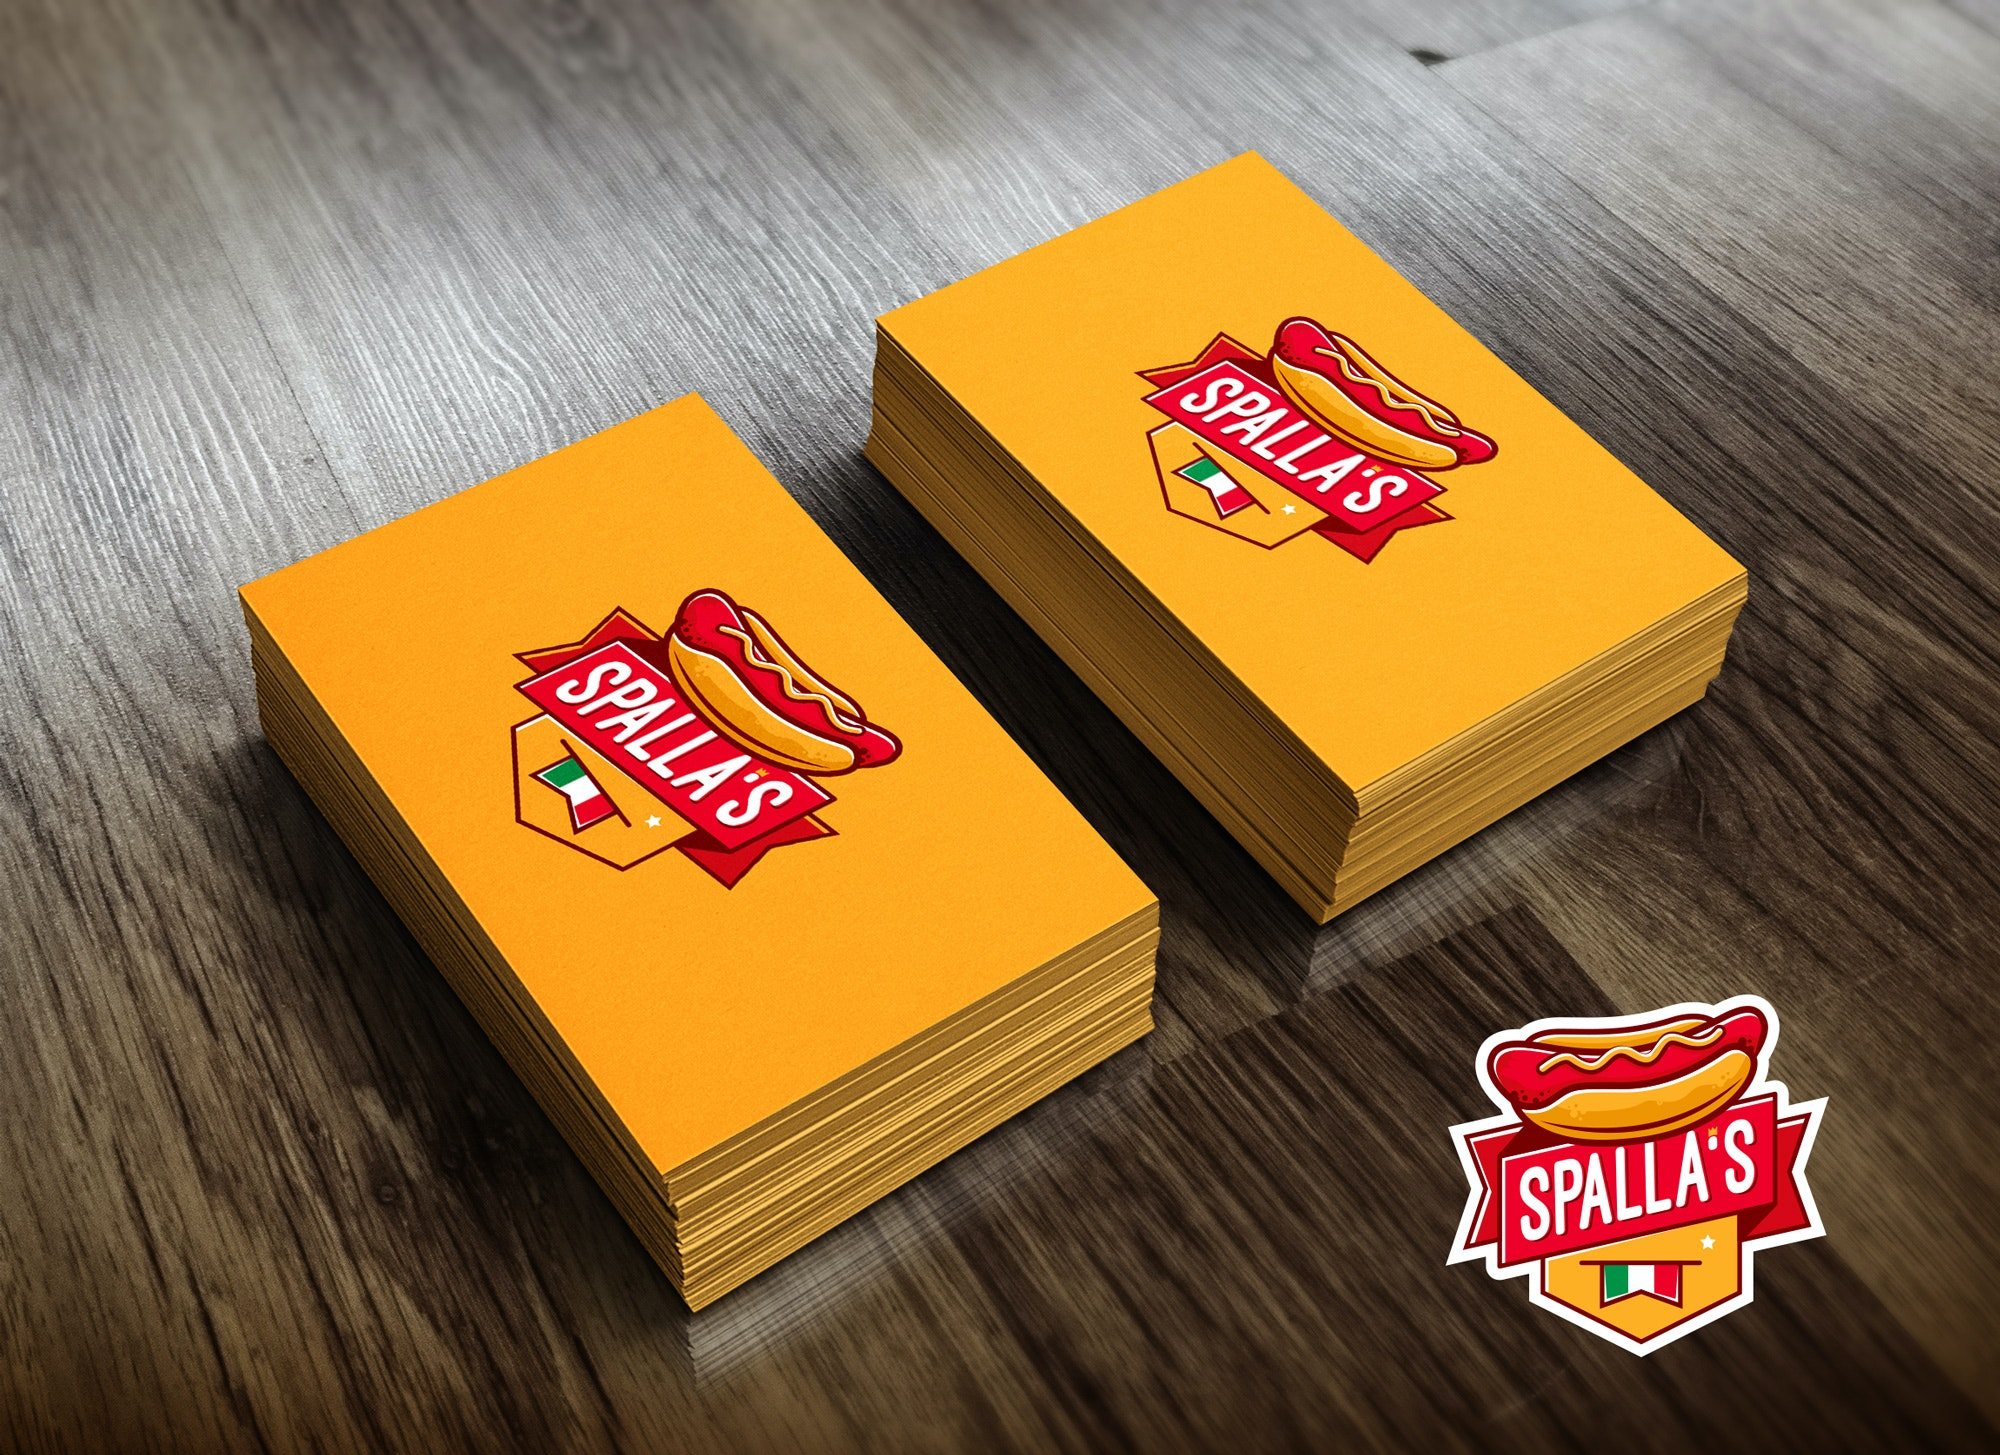 Hot dog logo design